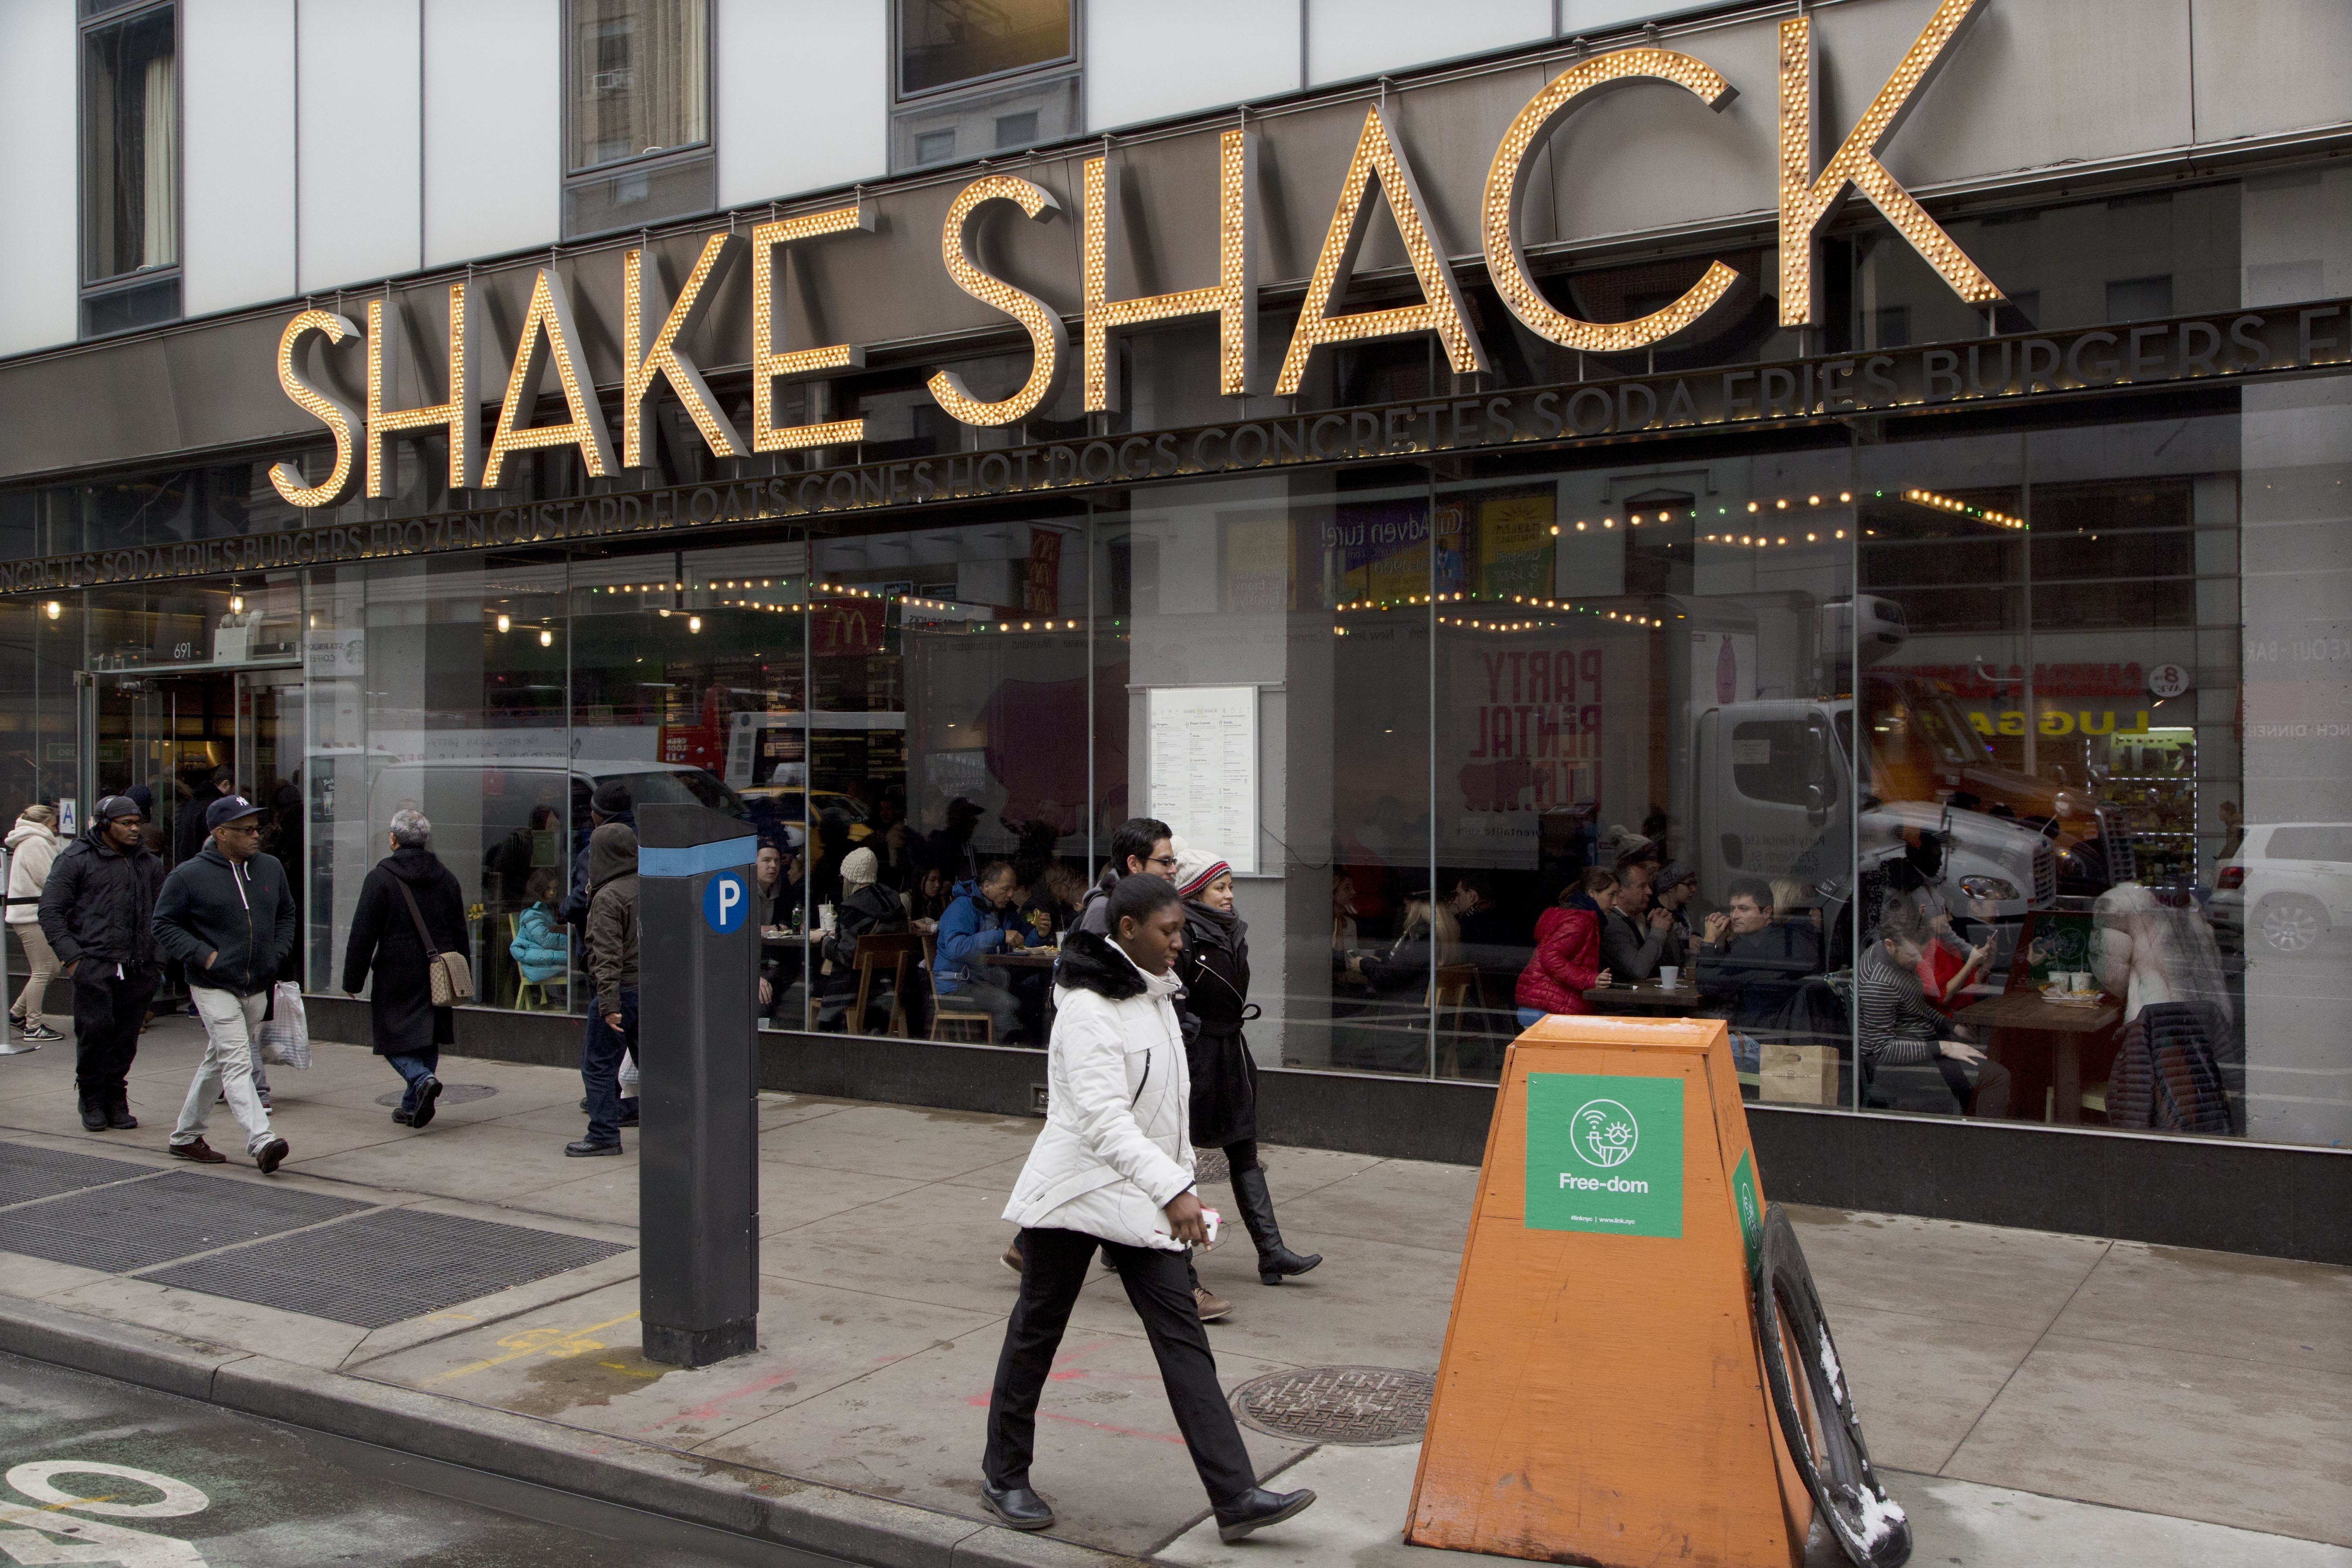 Shake Shack Is Raising Burger Prices So It Can Pay Workers